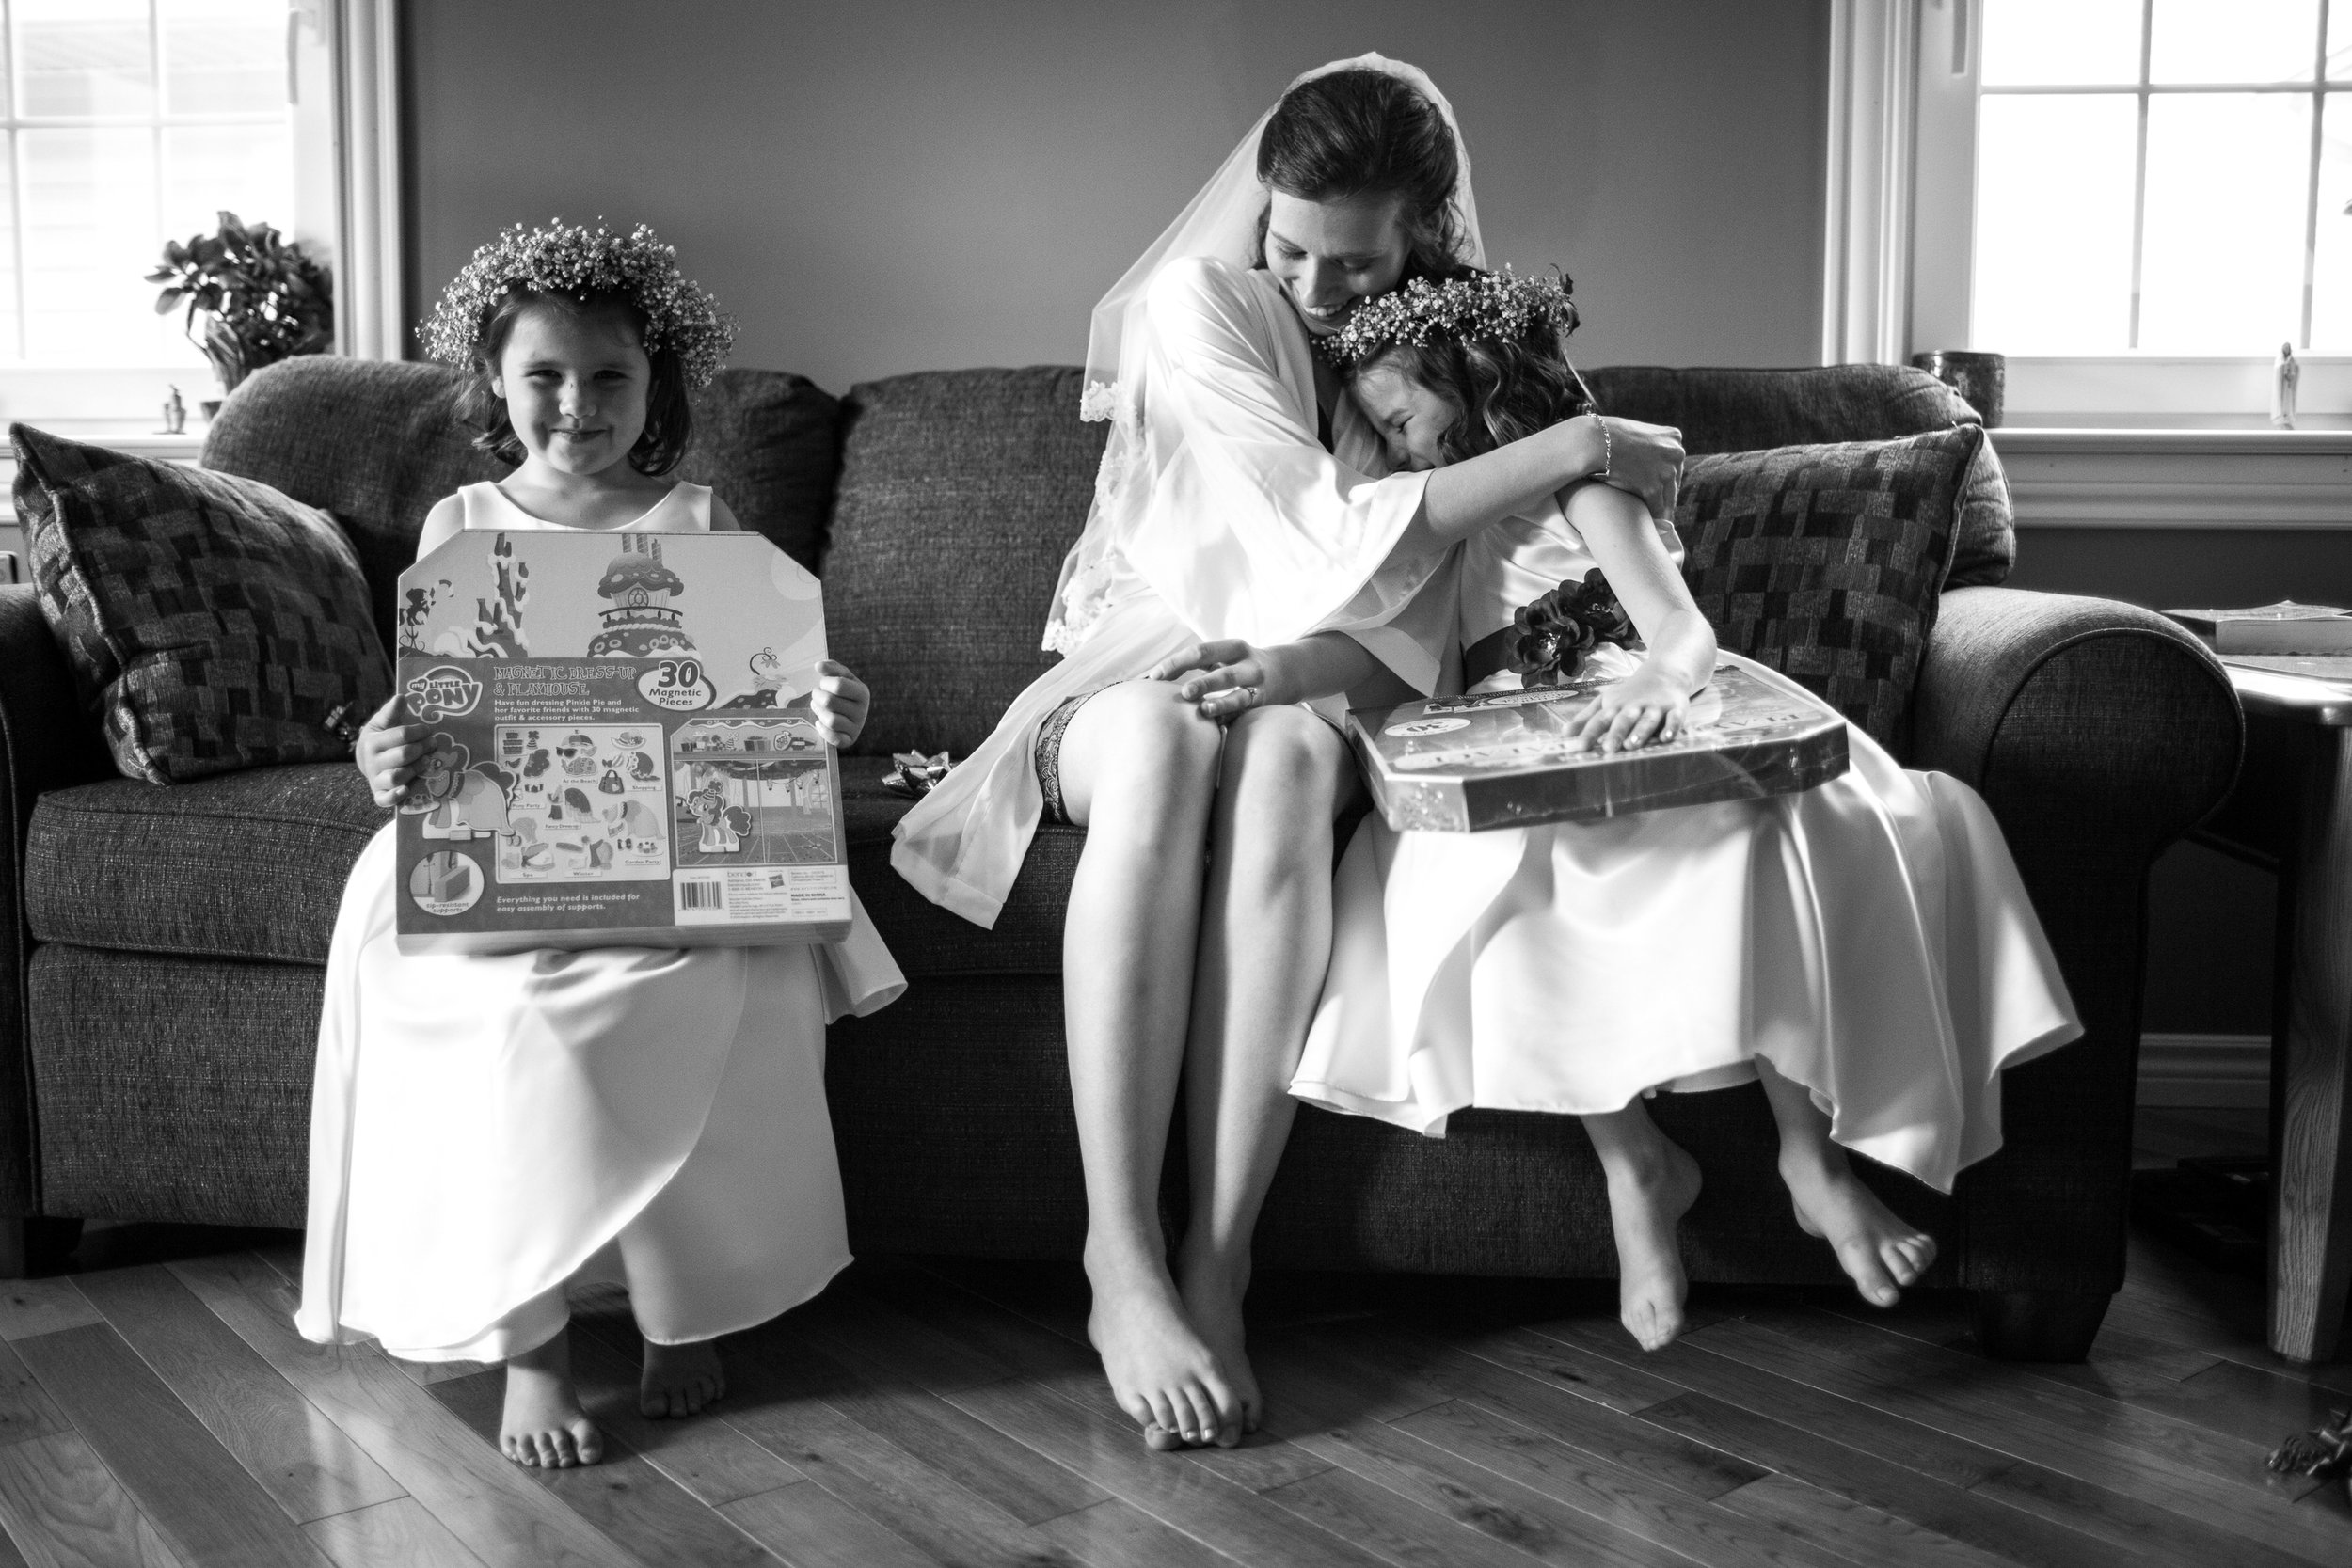 moncton_wedding_photographer_caro_photo-3.jpg